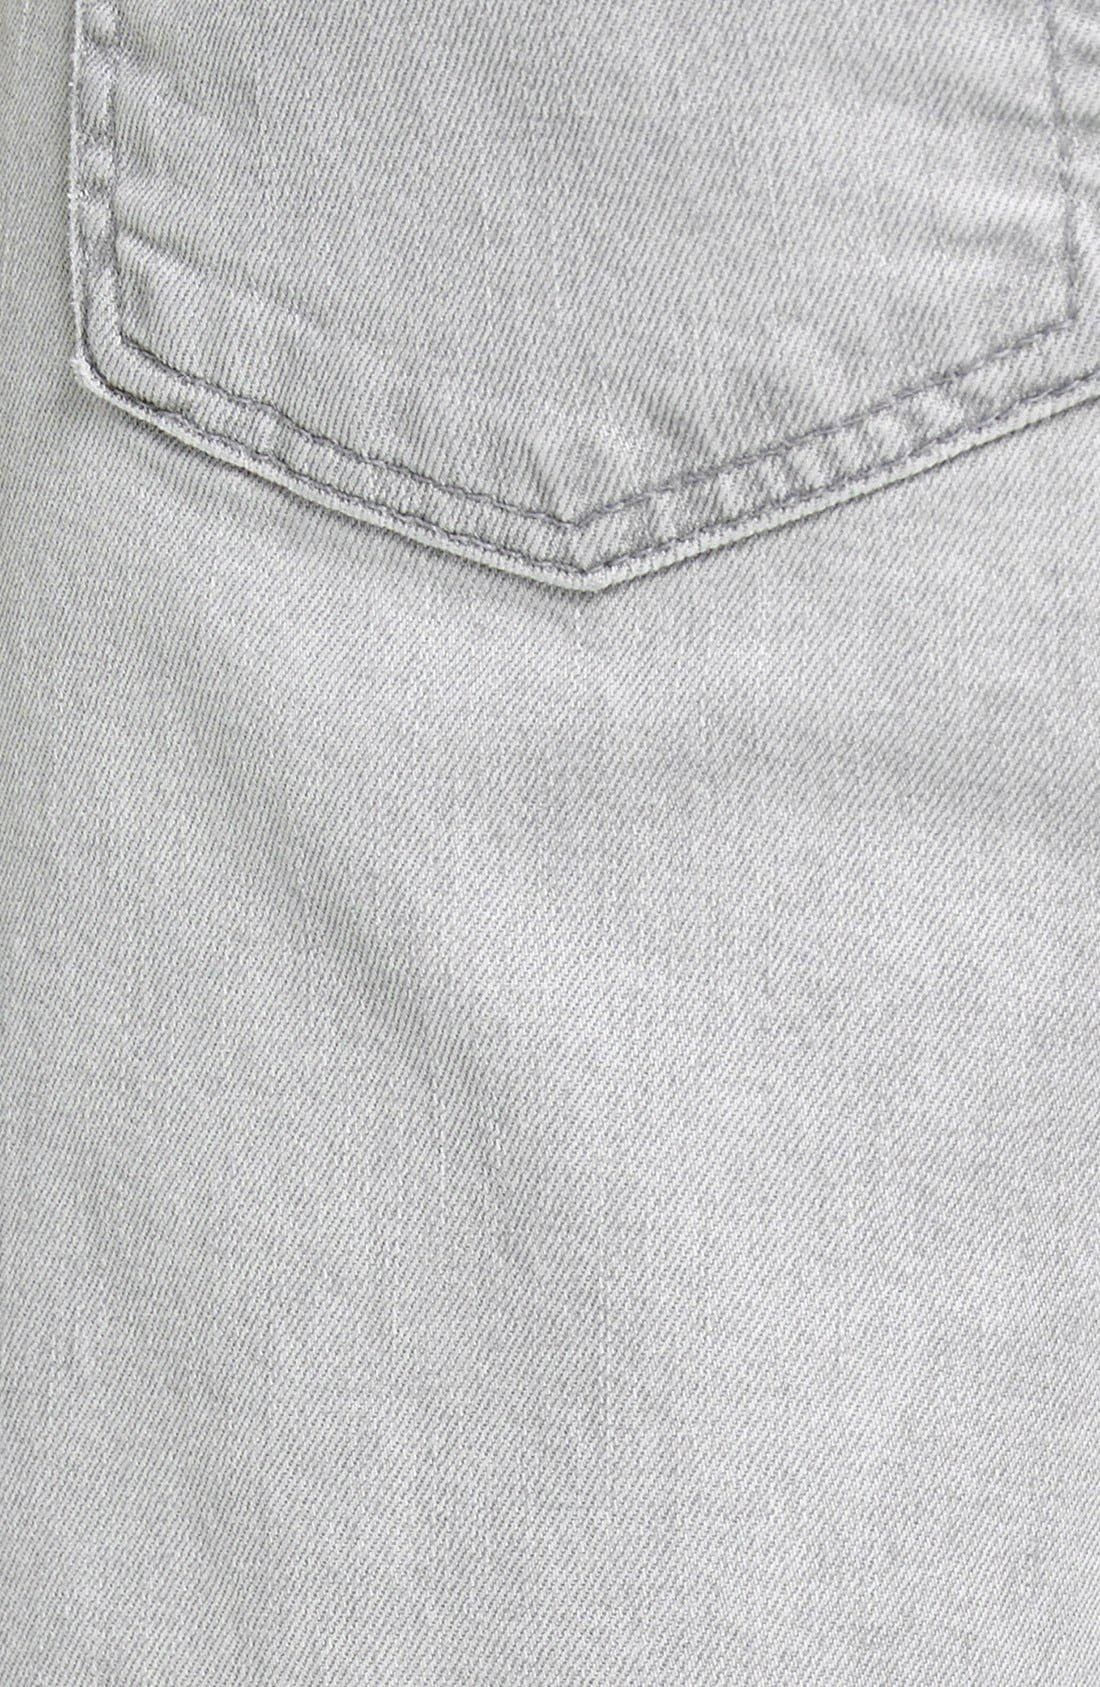 Alternate Image 4  - 7 For All Mankind® 'Paxtyn' Slim Straight Leg Jeans (Clean Grey)